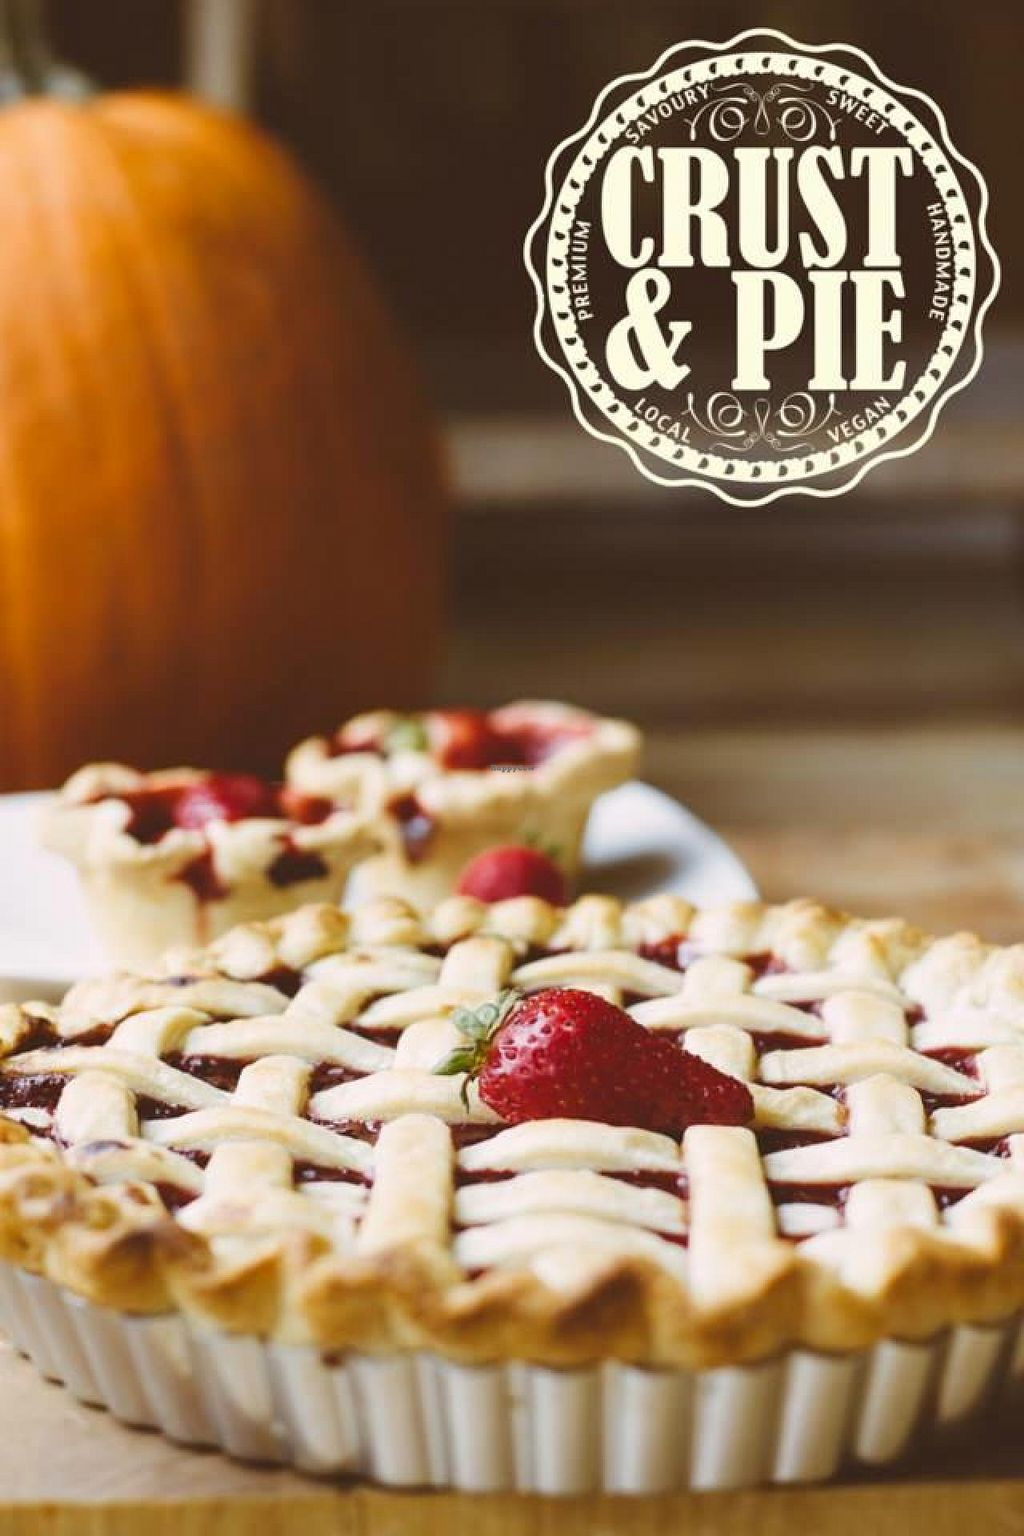 "Photo of Crust and Pie  by <a href=""/members/profile/EwenLewis"">EwenLewis</a> <br/>Crust & Pie Strawbarb Vegan Pie <br/> November 12, 2014  - <a href='/contact/abuse/image/53004/85302'>Report</a>"